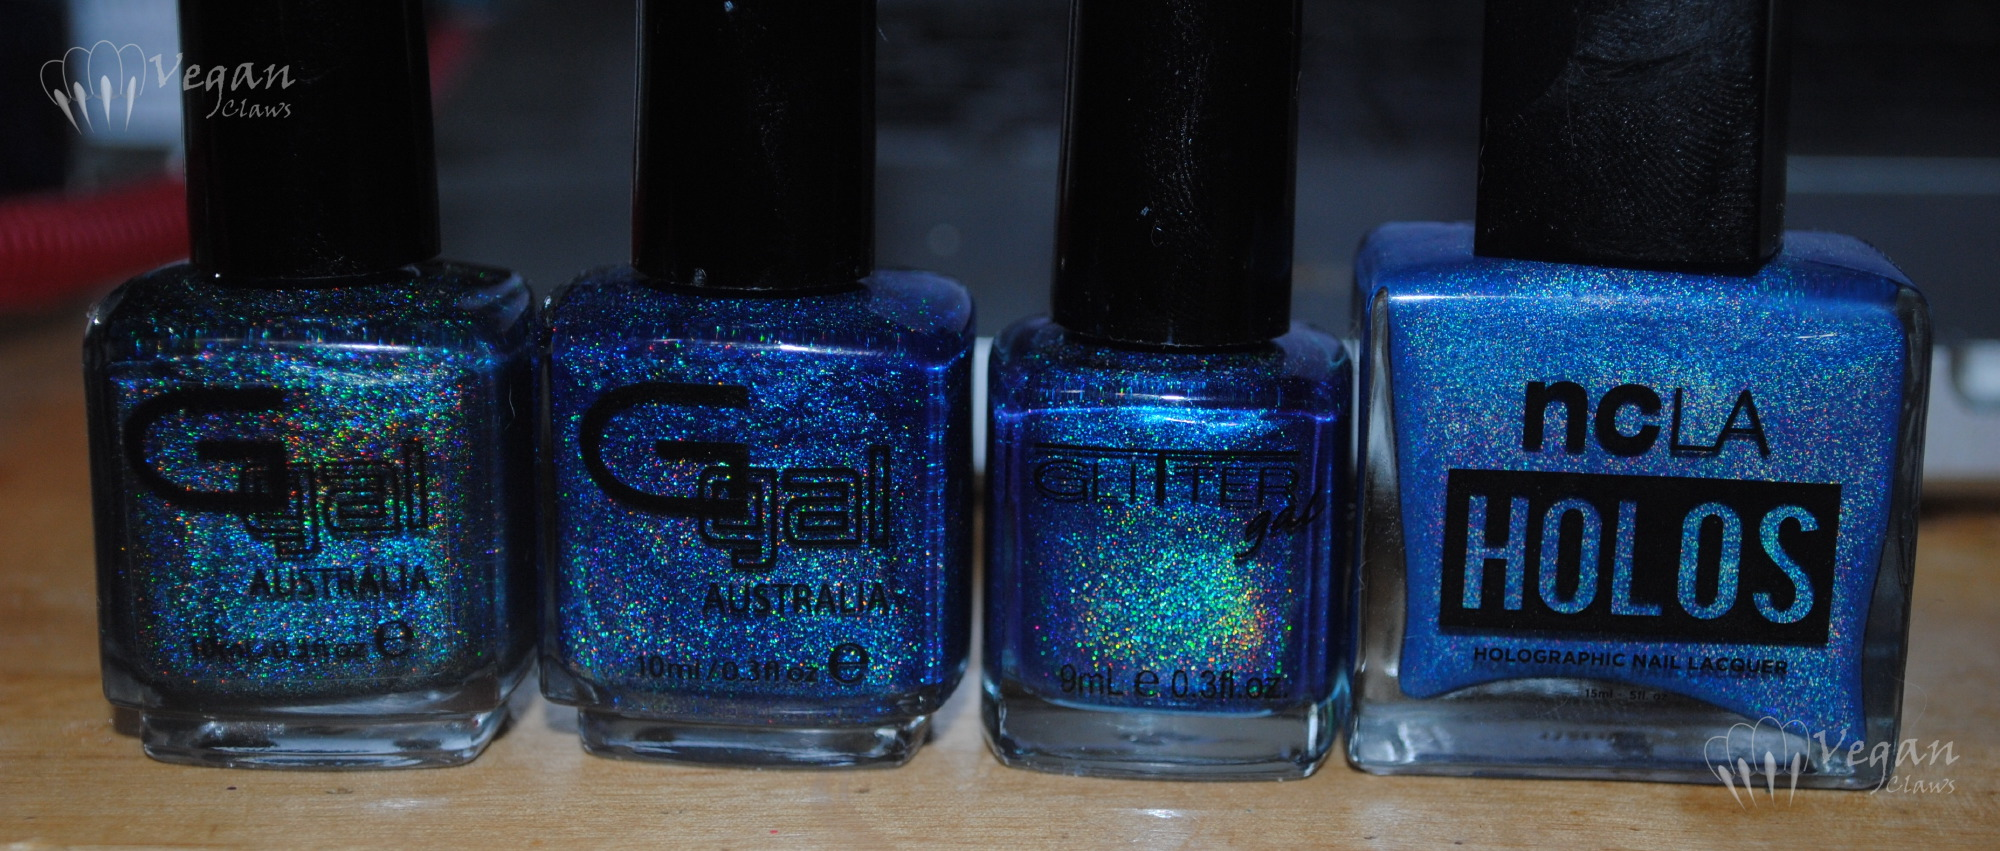 Deep Blue Holo Comparison featuring Glitter Gal and NCLA | Vegan Claws